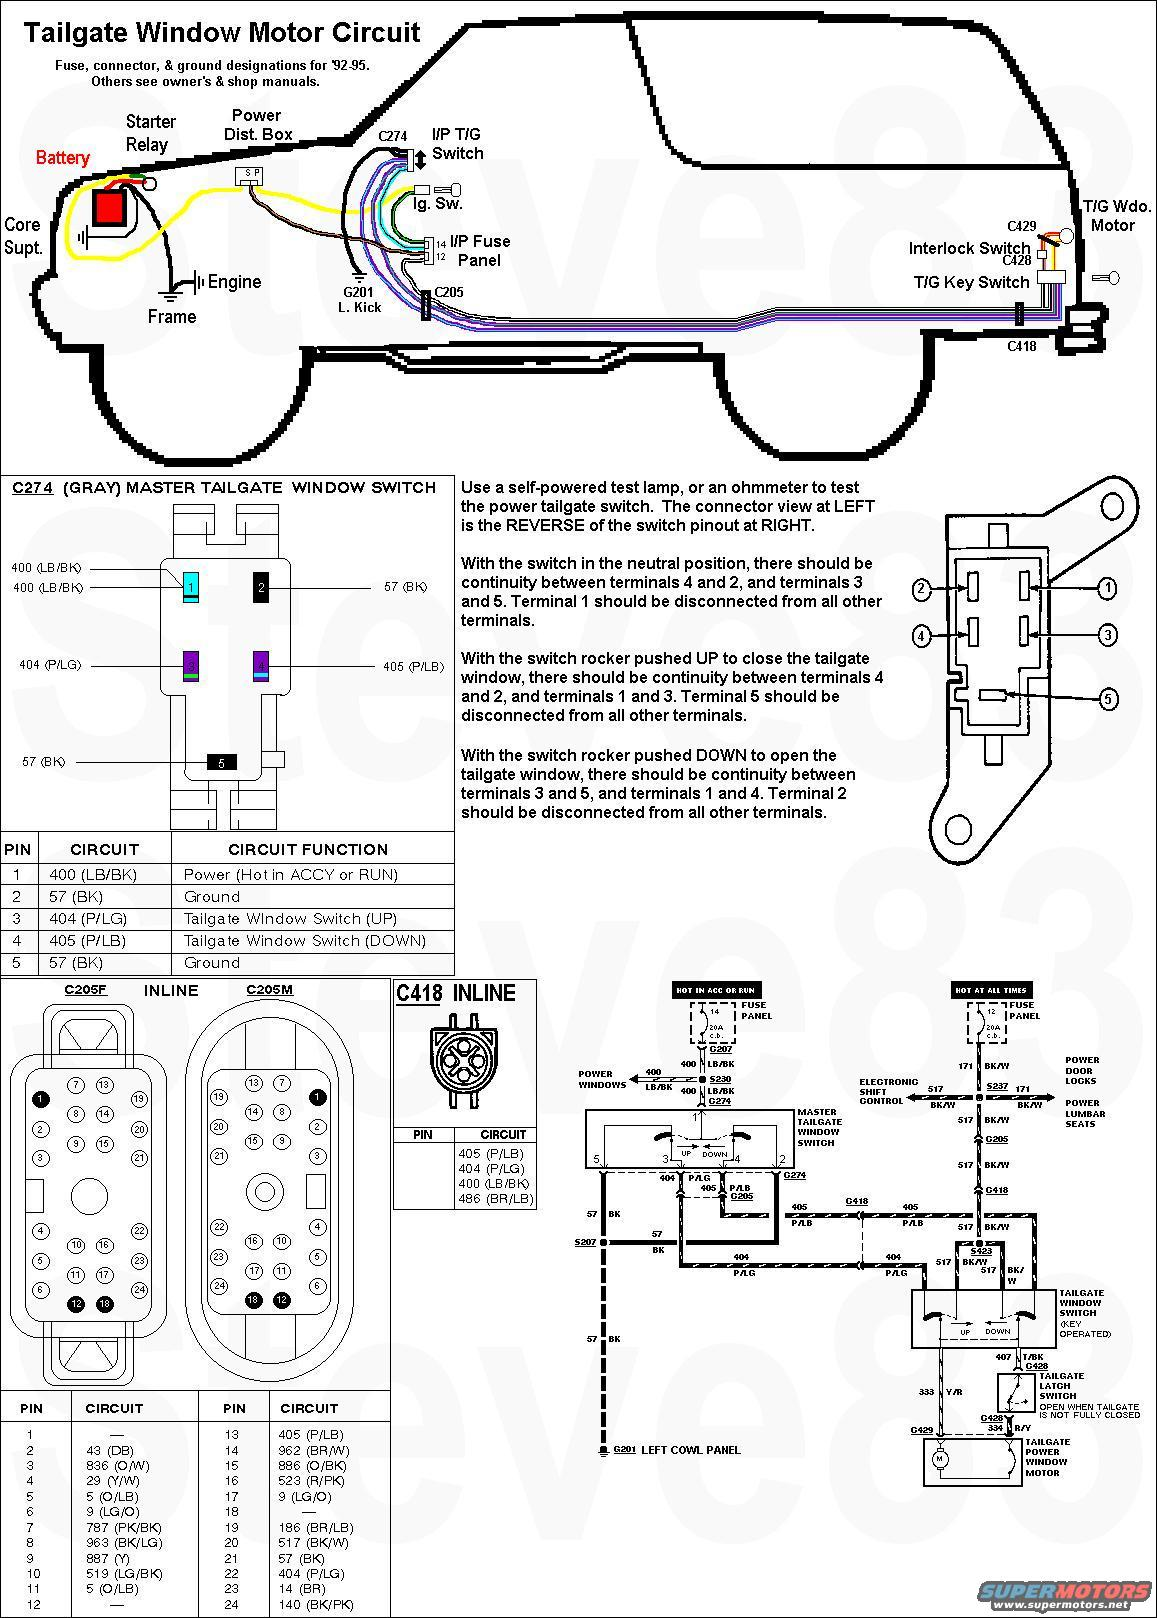 tgmotorwiring ford bronco wiring diagrams ford wiring diagrams instruction 1989 ford bronco wiring diagram at n-0.co